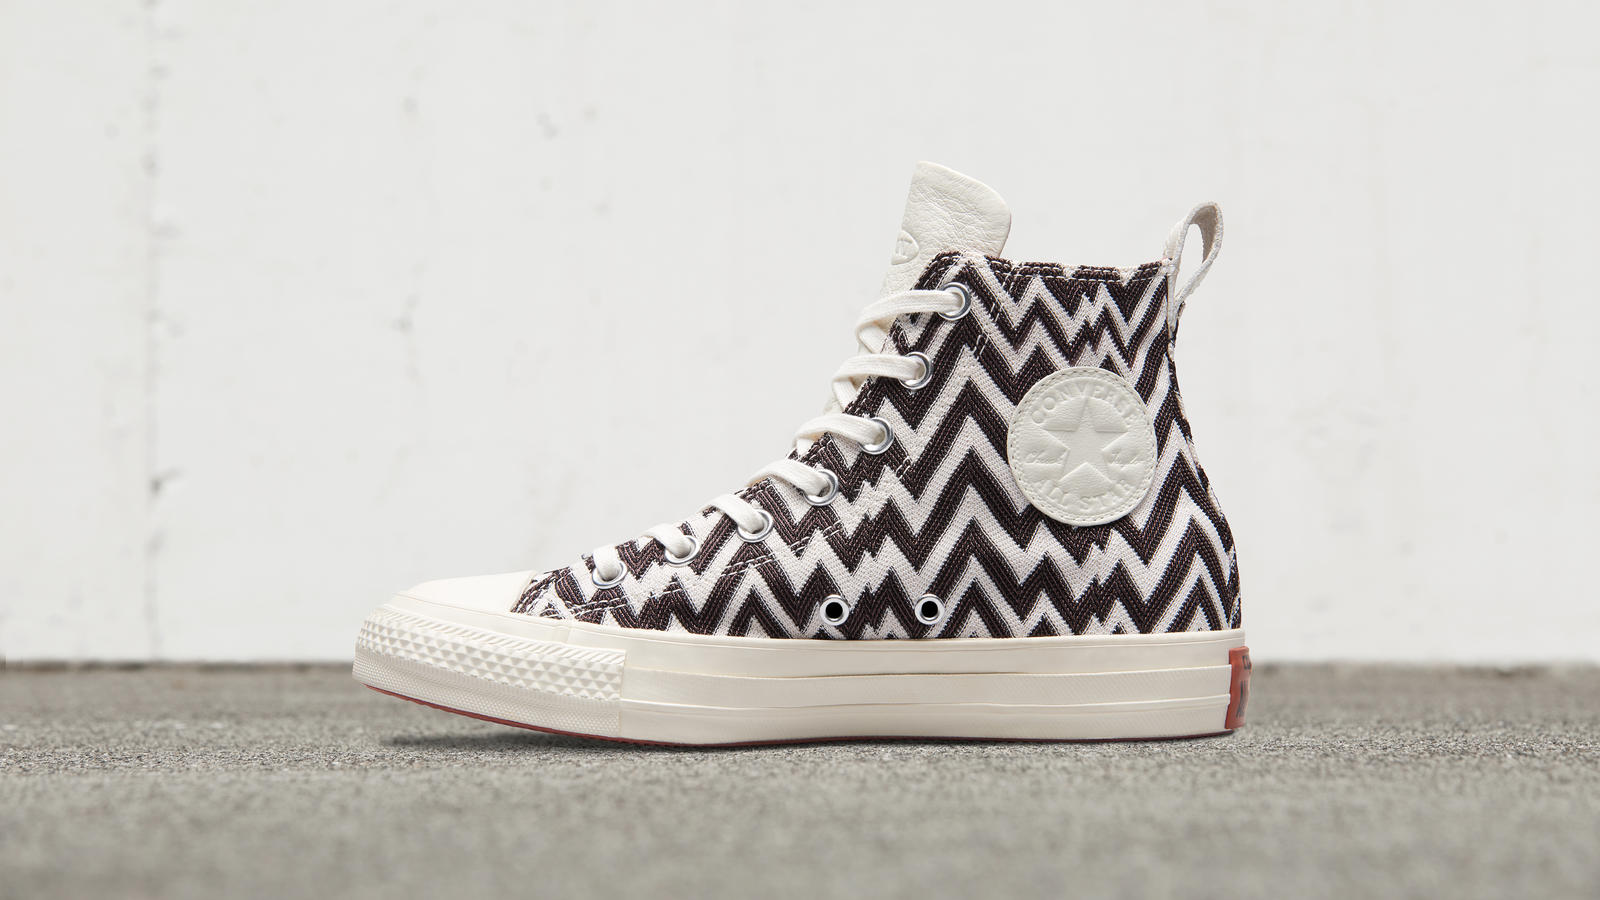 160823 converse missoni 154440 profile main hd 1600